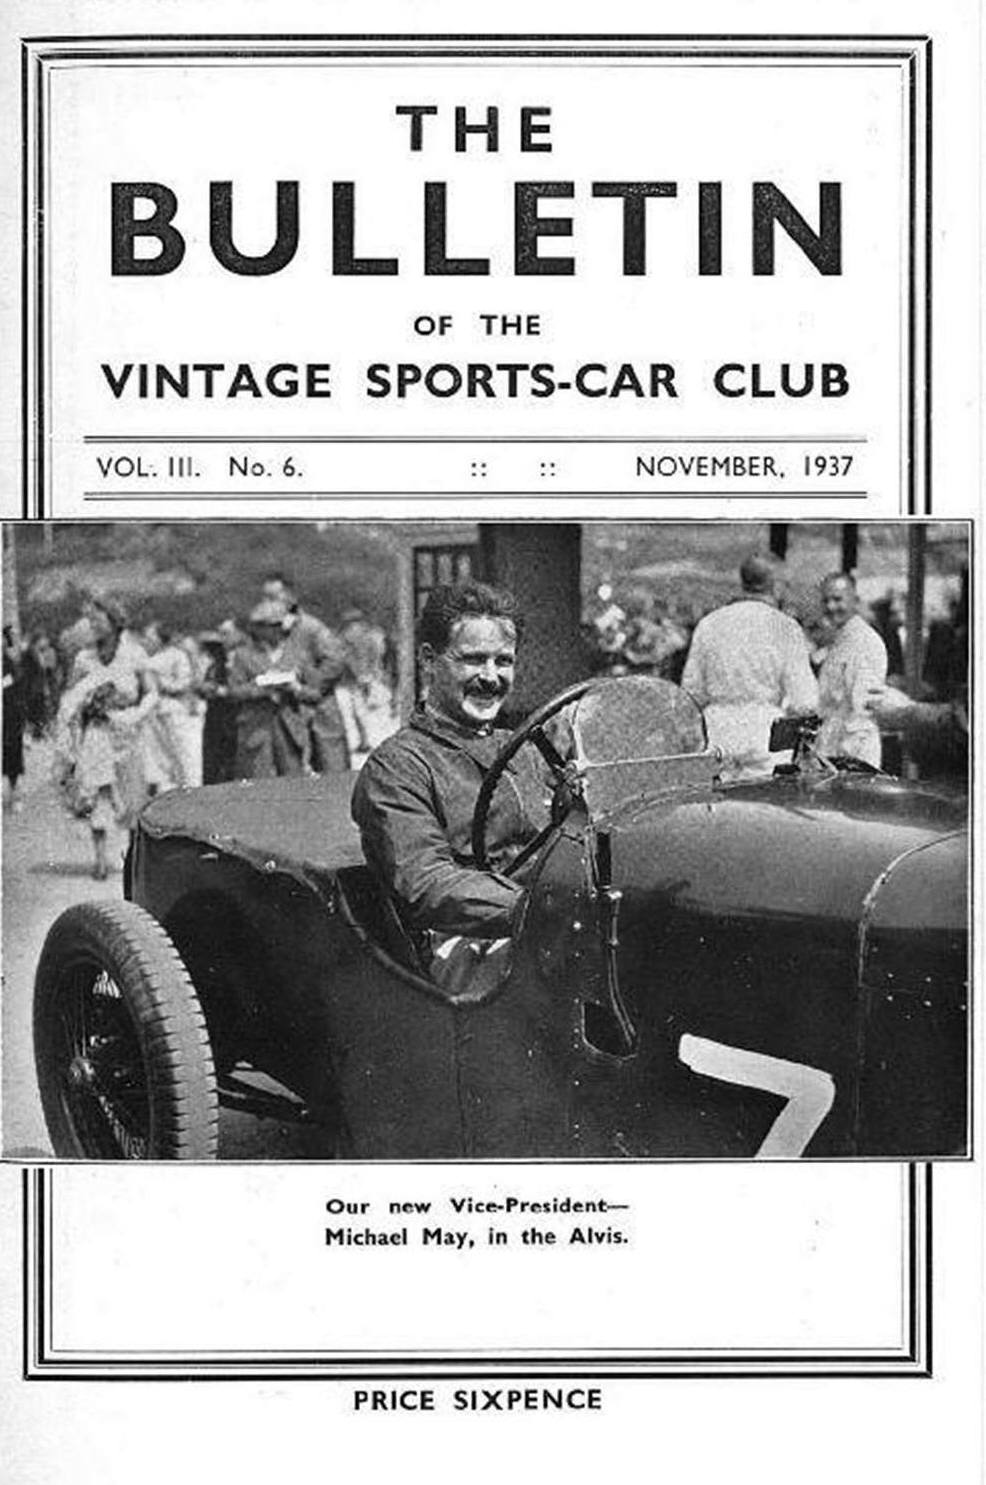 Croydon 05/09/1937.......    Winterslow Rally........    A Watch on the Winged Bentley cover